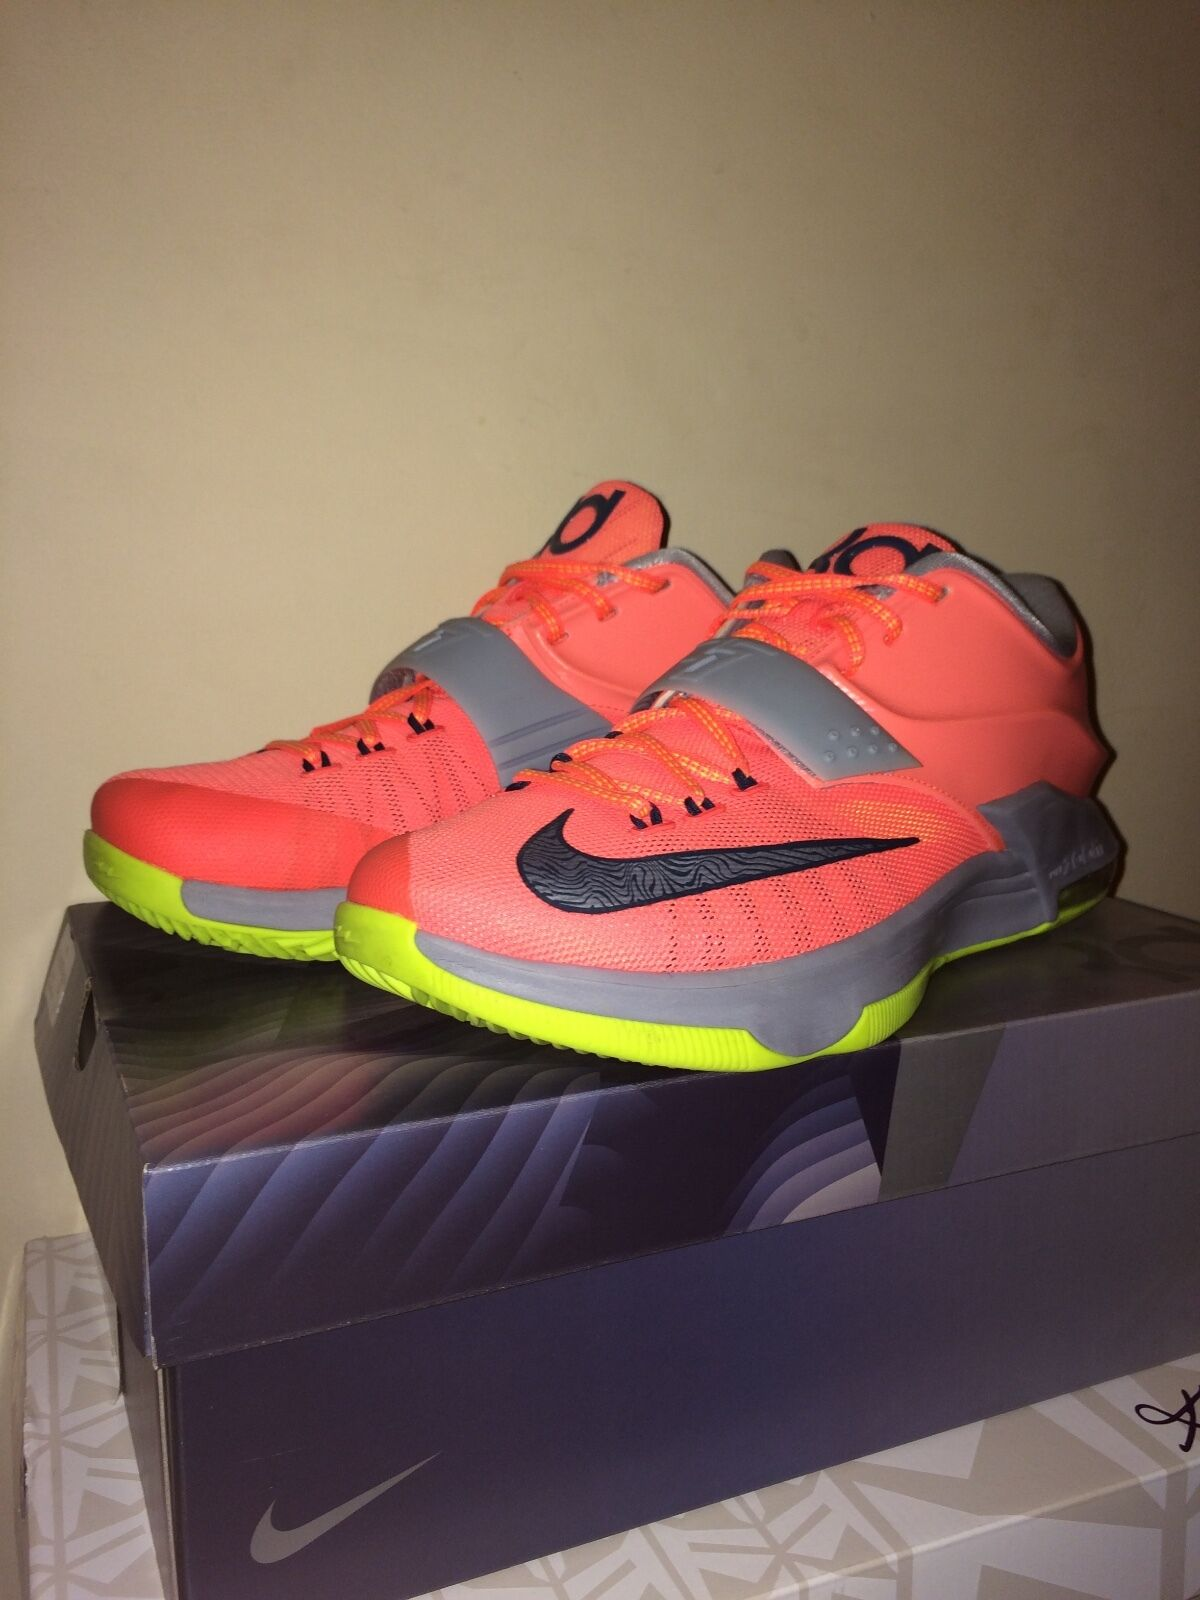 Mens Nike KD 7 3500 Degrees (brght mng spc bl-lt mgnt gry) Size  9.5 653996-840